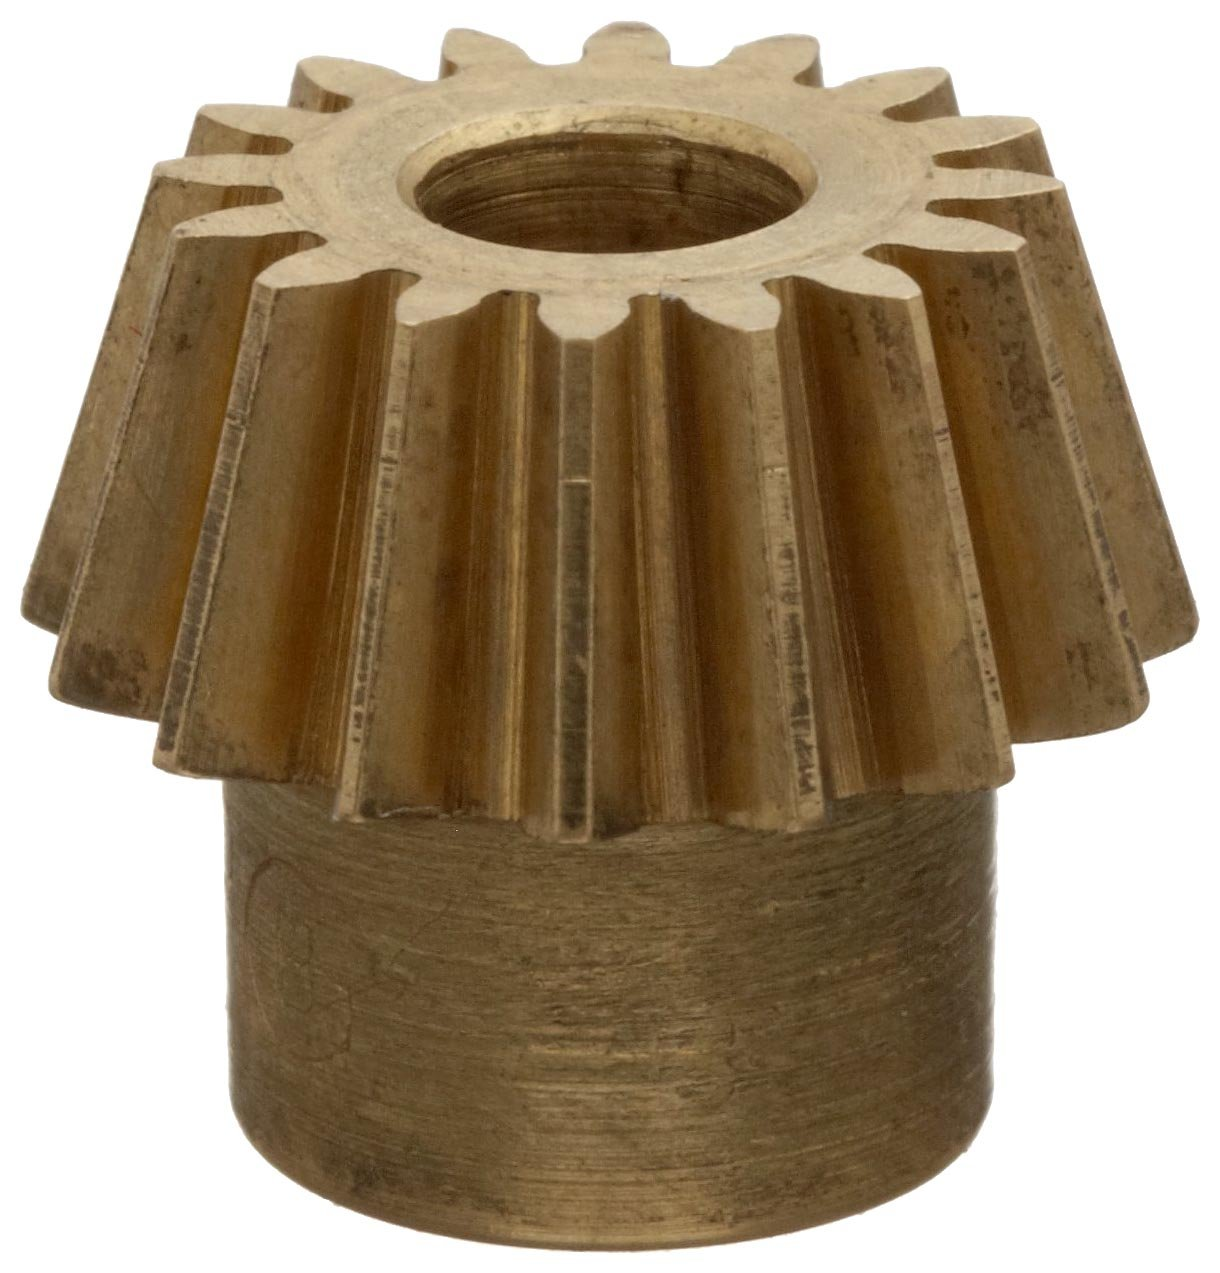 "Boston Gear G486Y-P Bevel Pinion Gear, 4:1 Ratio, 0.188"" Bore, 32 Pitch, 16 Teeth, 20 Degree Pressure Angle, Straight Bevel, Keyway, Brass"